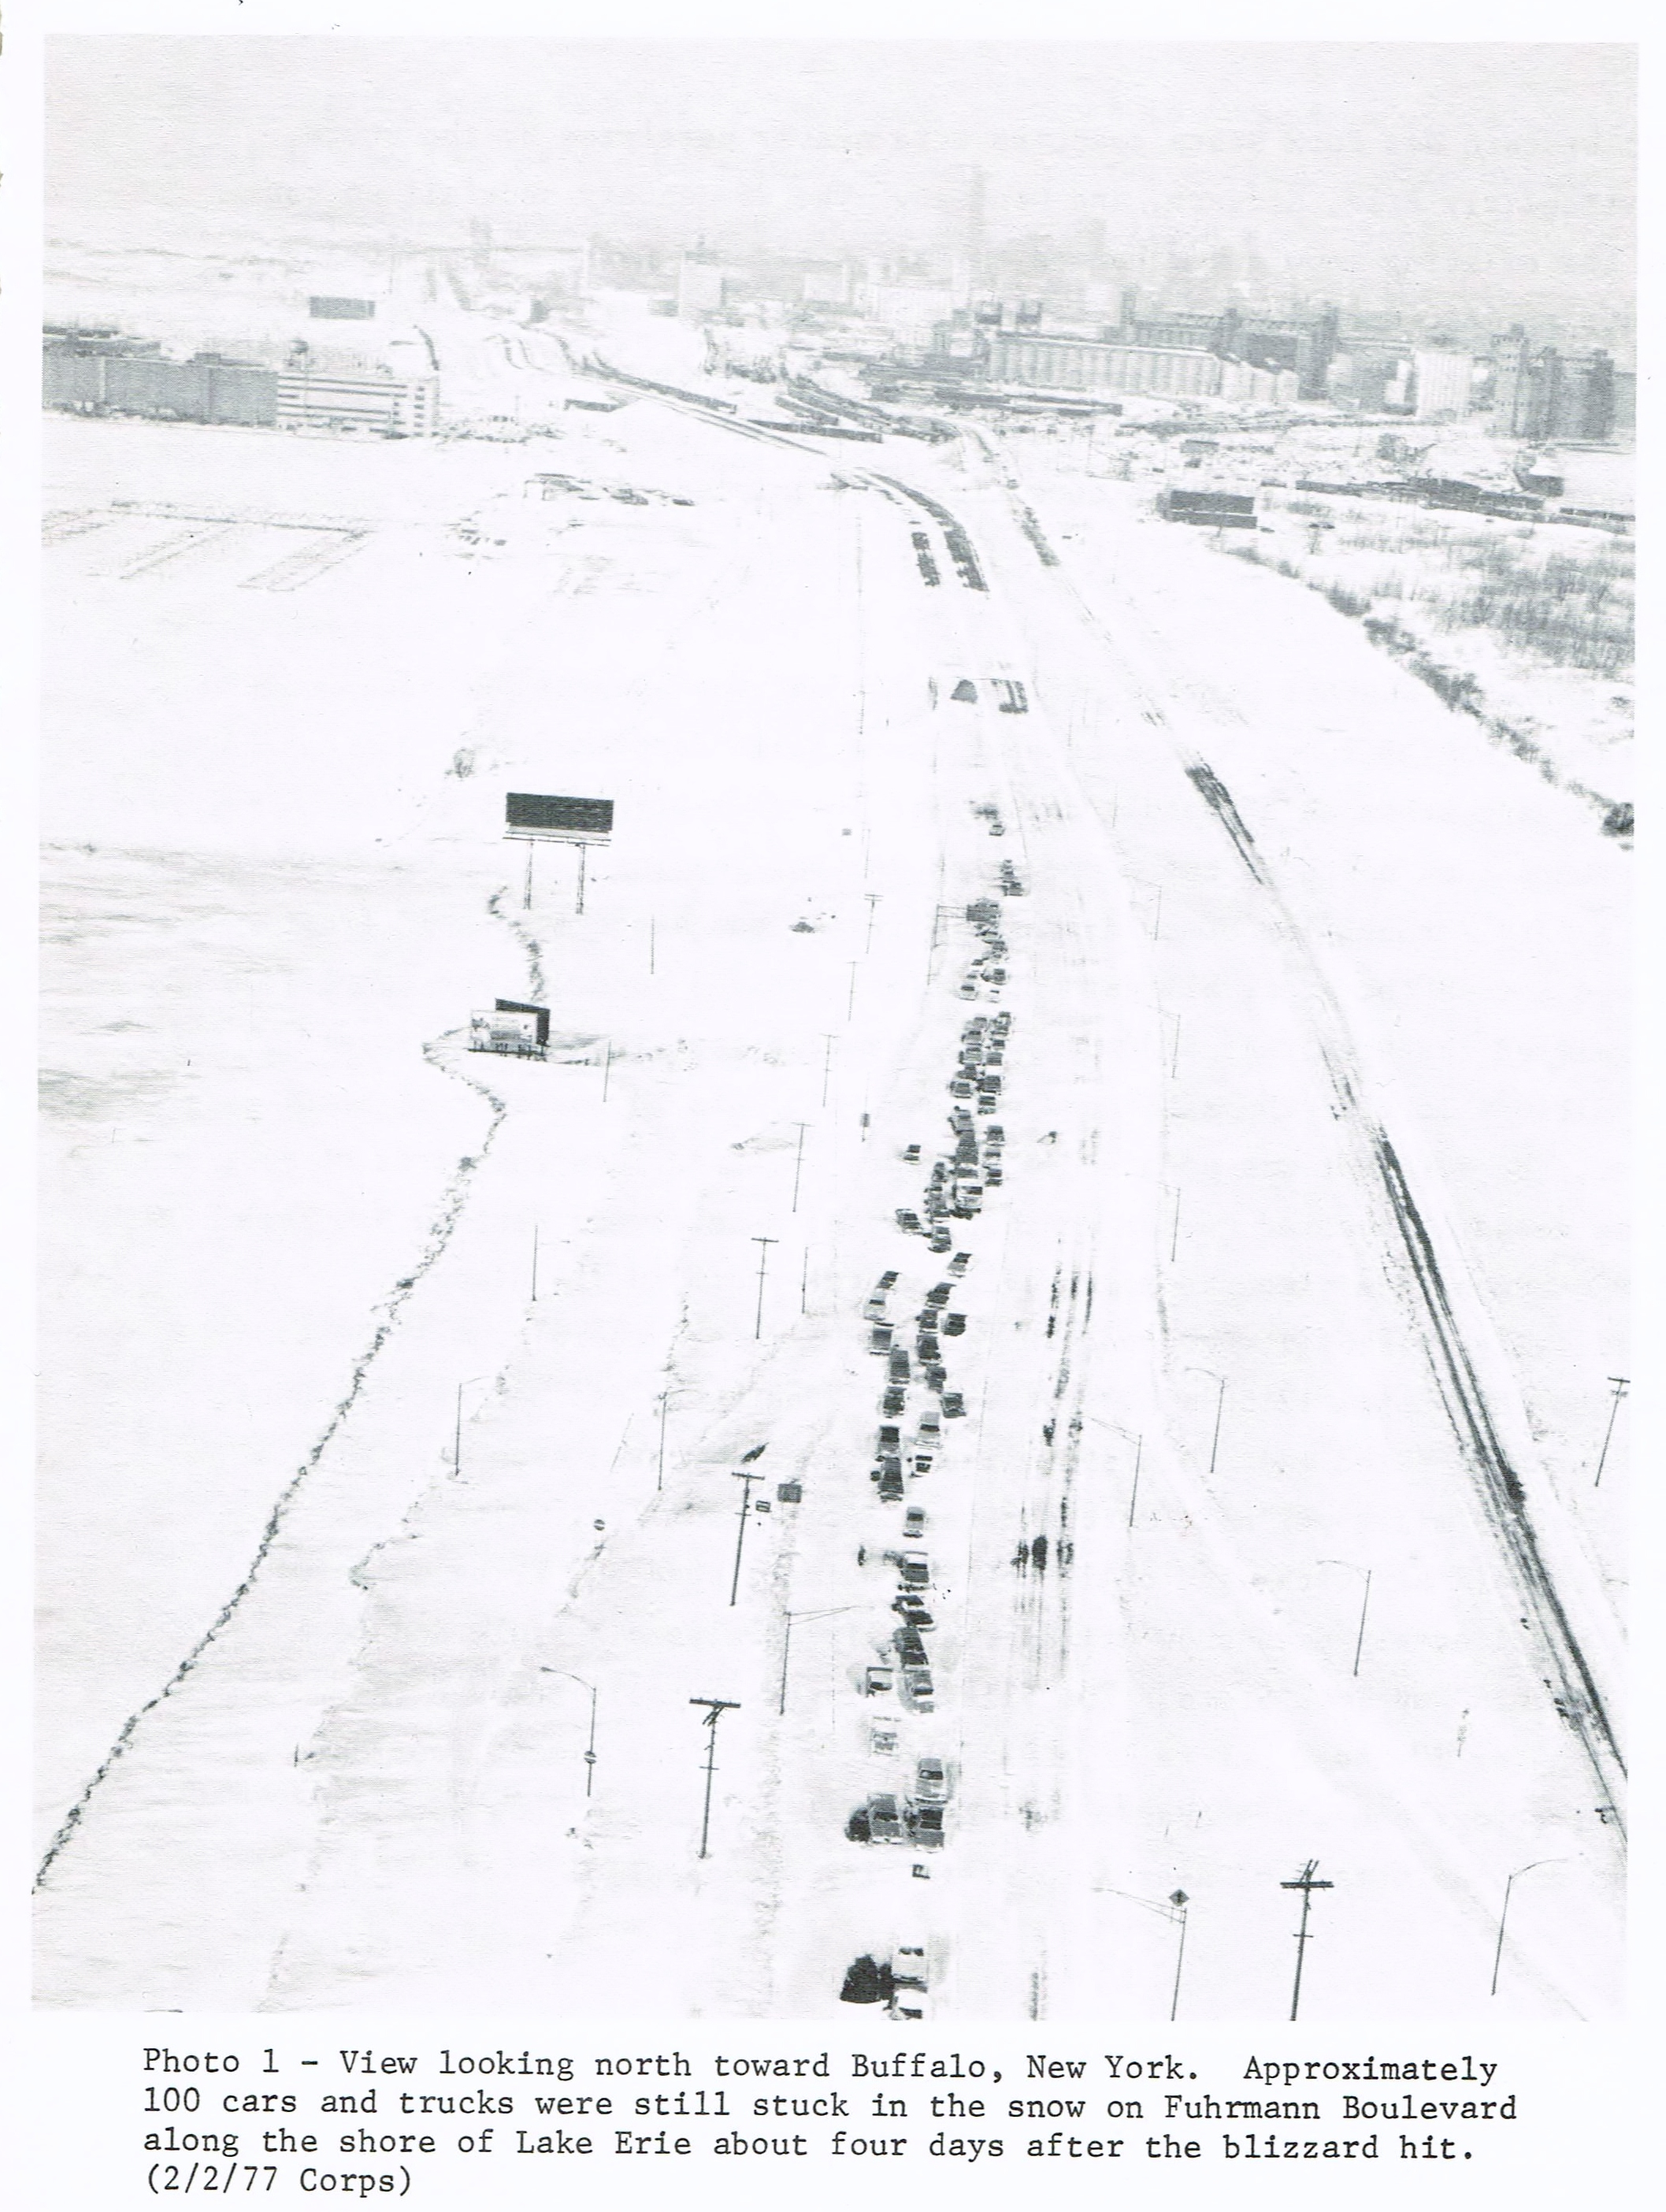 Blizzard Of 77 Anniversary Where Were You Jan 28